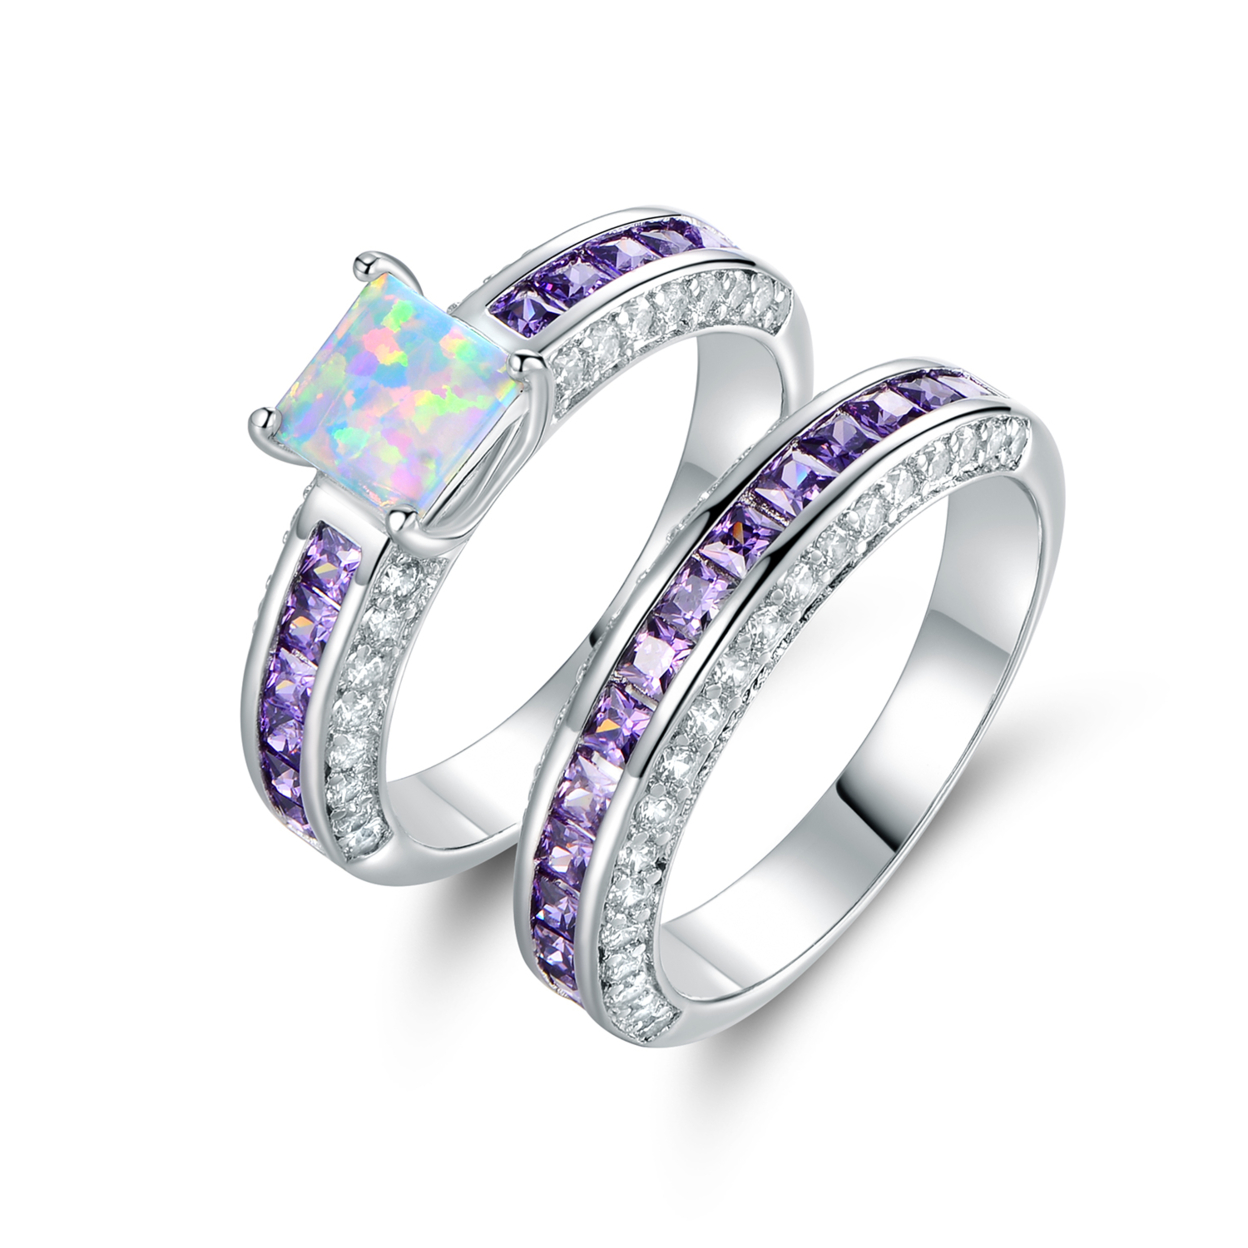 18k White Gold Plated Princess-cut White Fire Opal & Cubic Zirconia Engagement Ring Set R1568-0419 Size 5